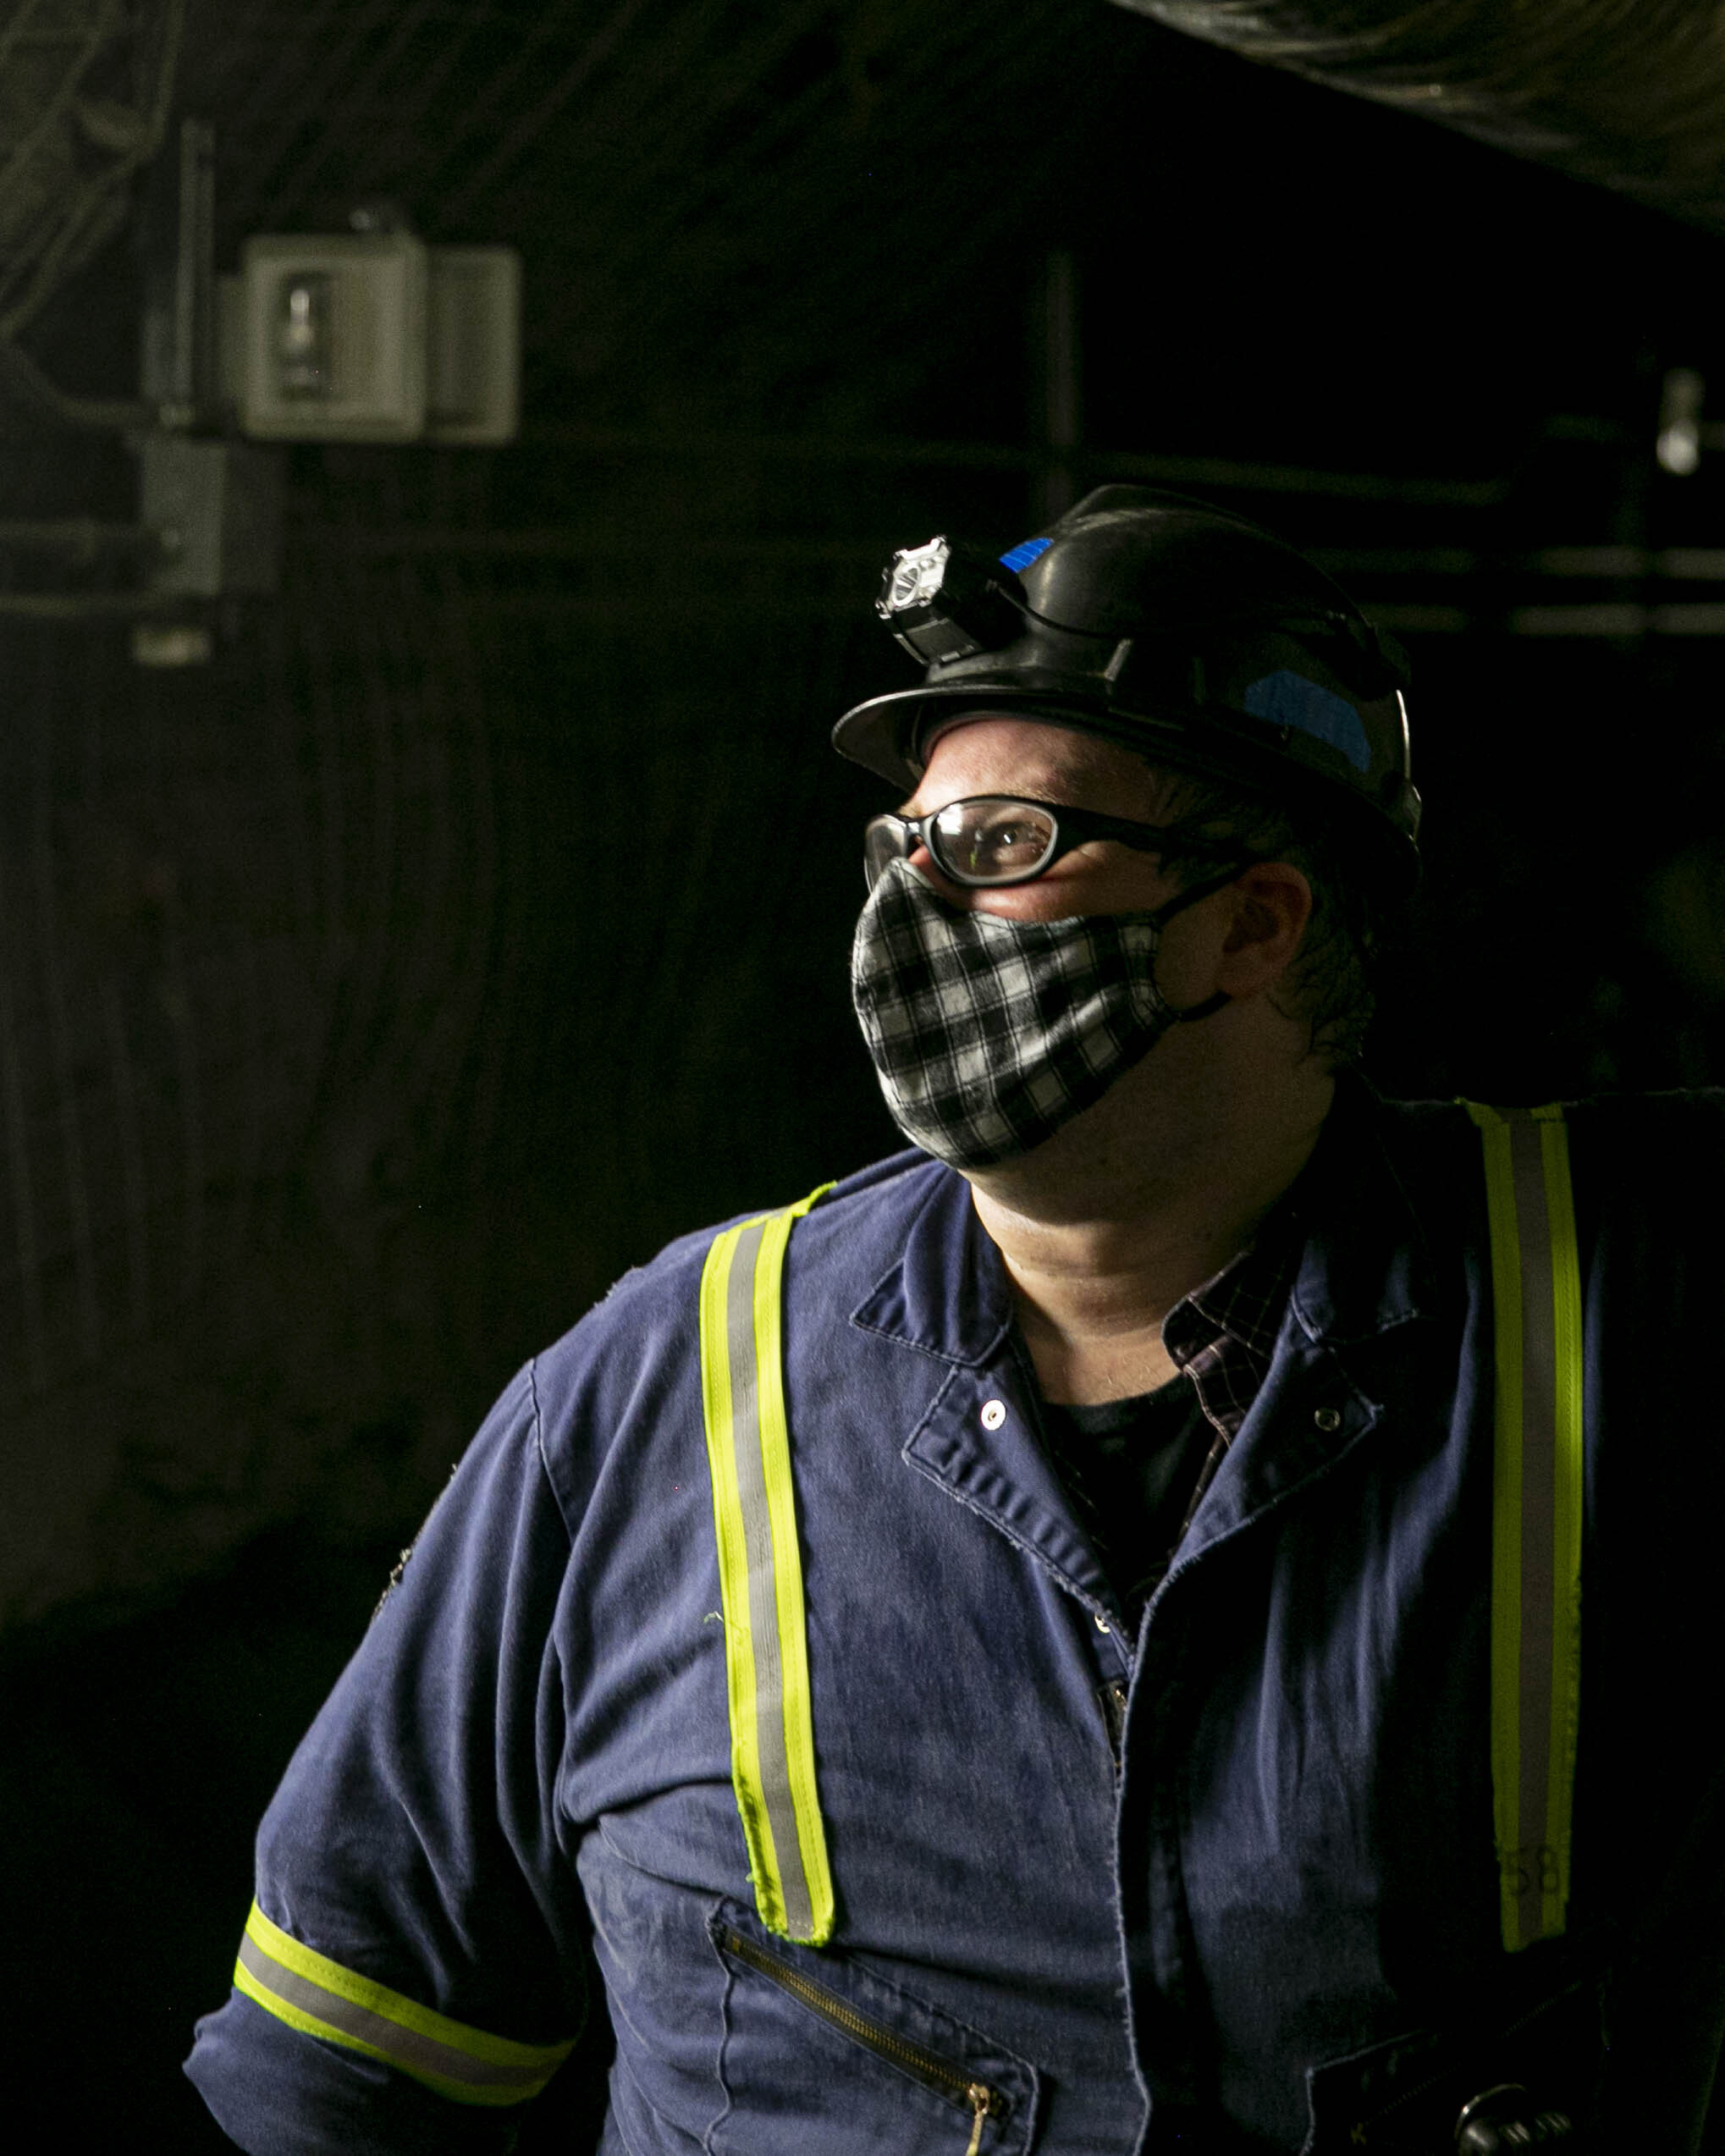 A man wearing a covid-19 mask stands in a dimly lit tunnel